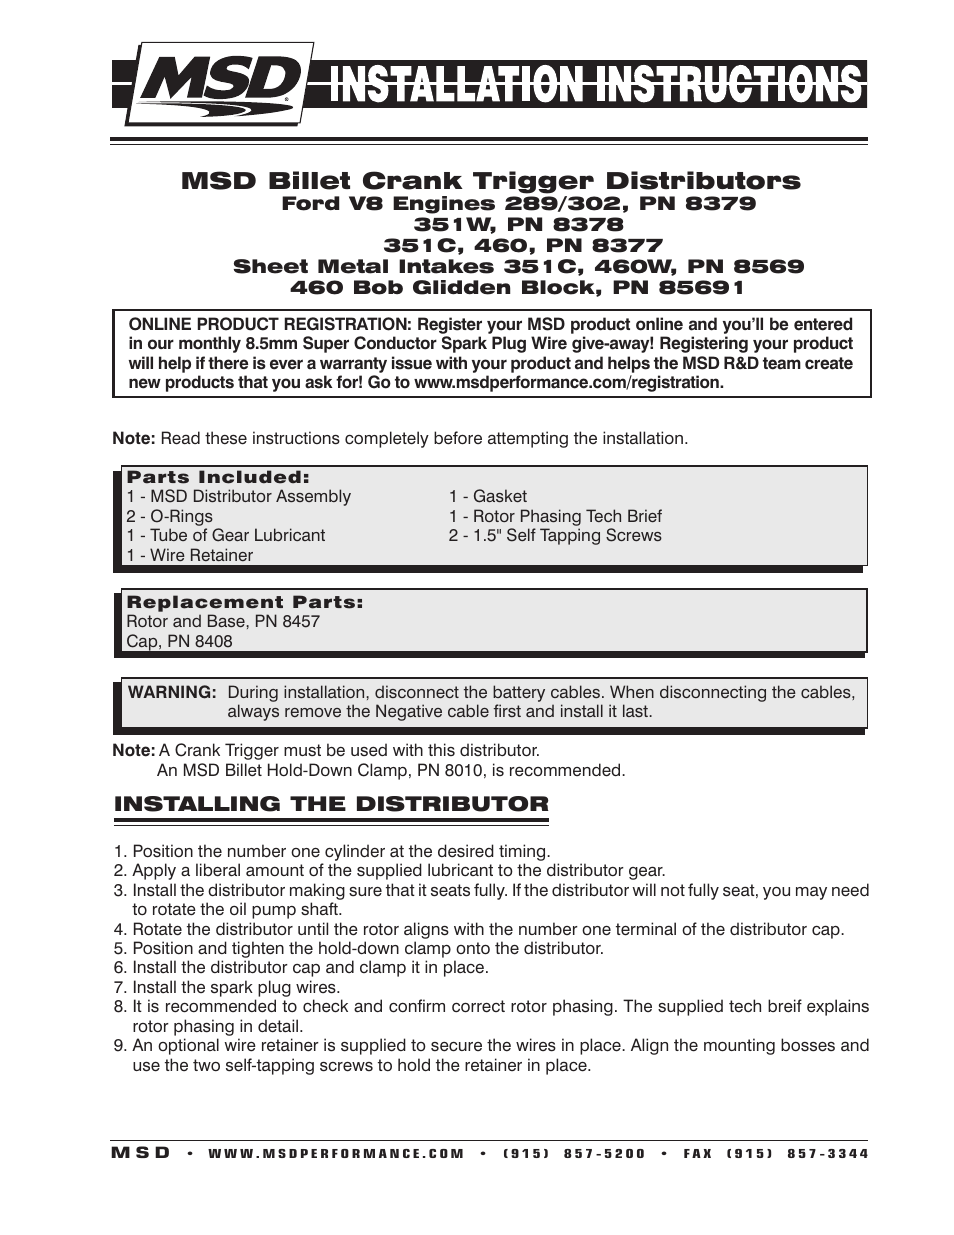 hight resolution of msd 8378 ford 351w crank trigger distributor installation user manual 2 pages also for 8569 ford 351c 460 crank trigger distributor installation